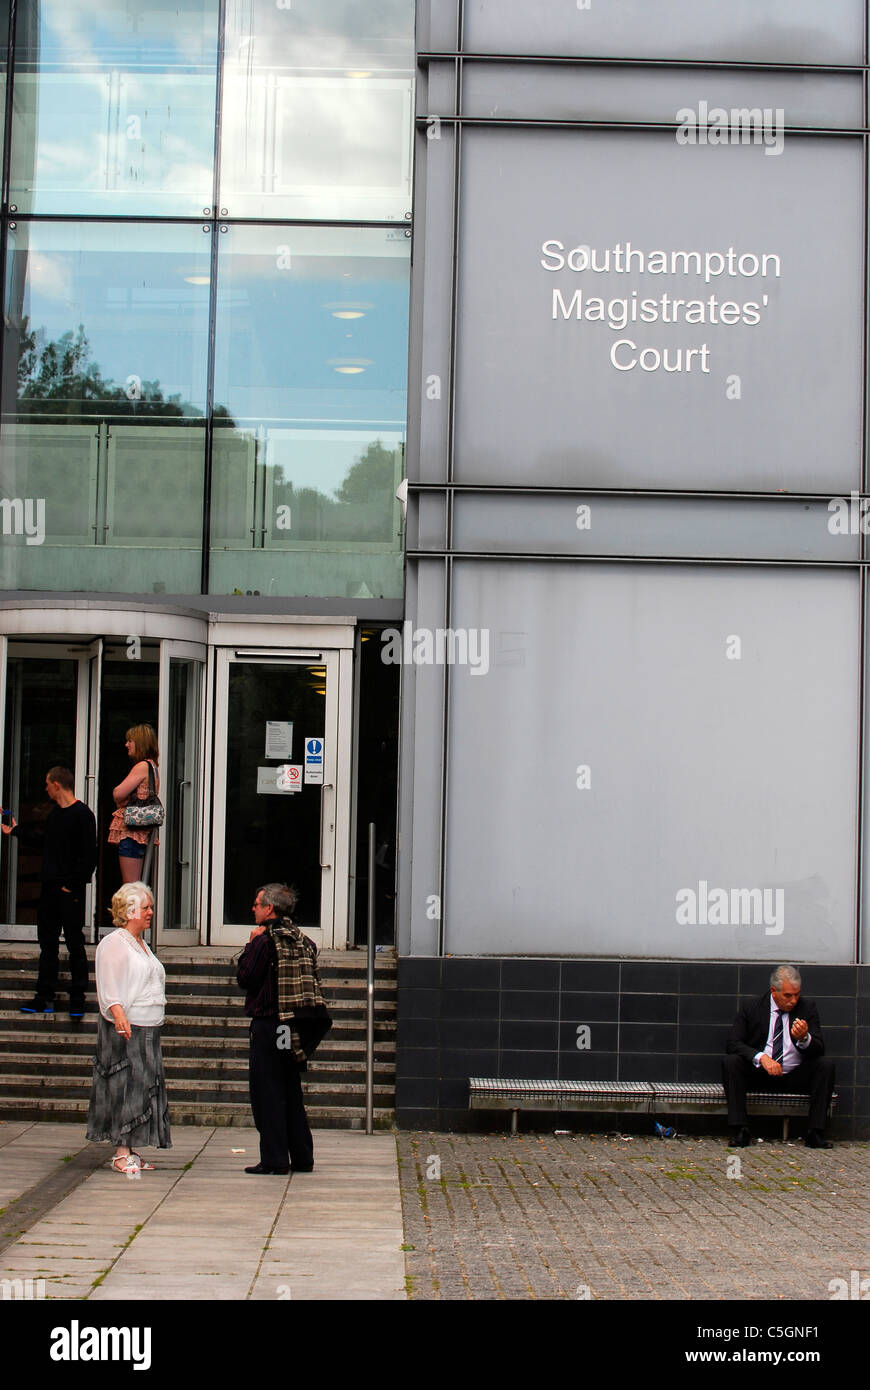 Exterior view of Southampton Magistrates Court, Hampshire, UK. - Stock Image